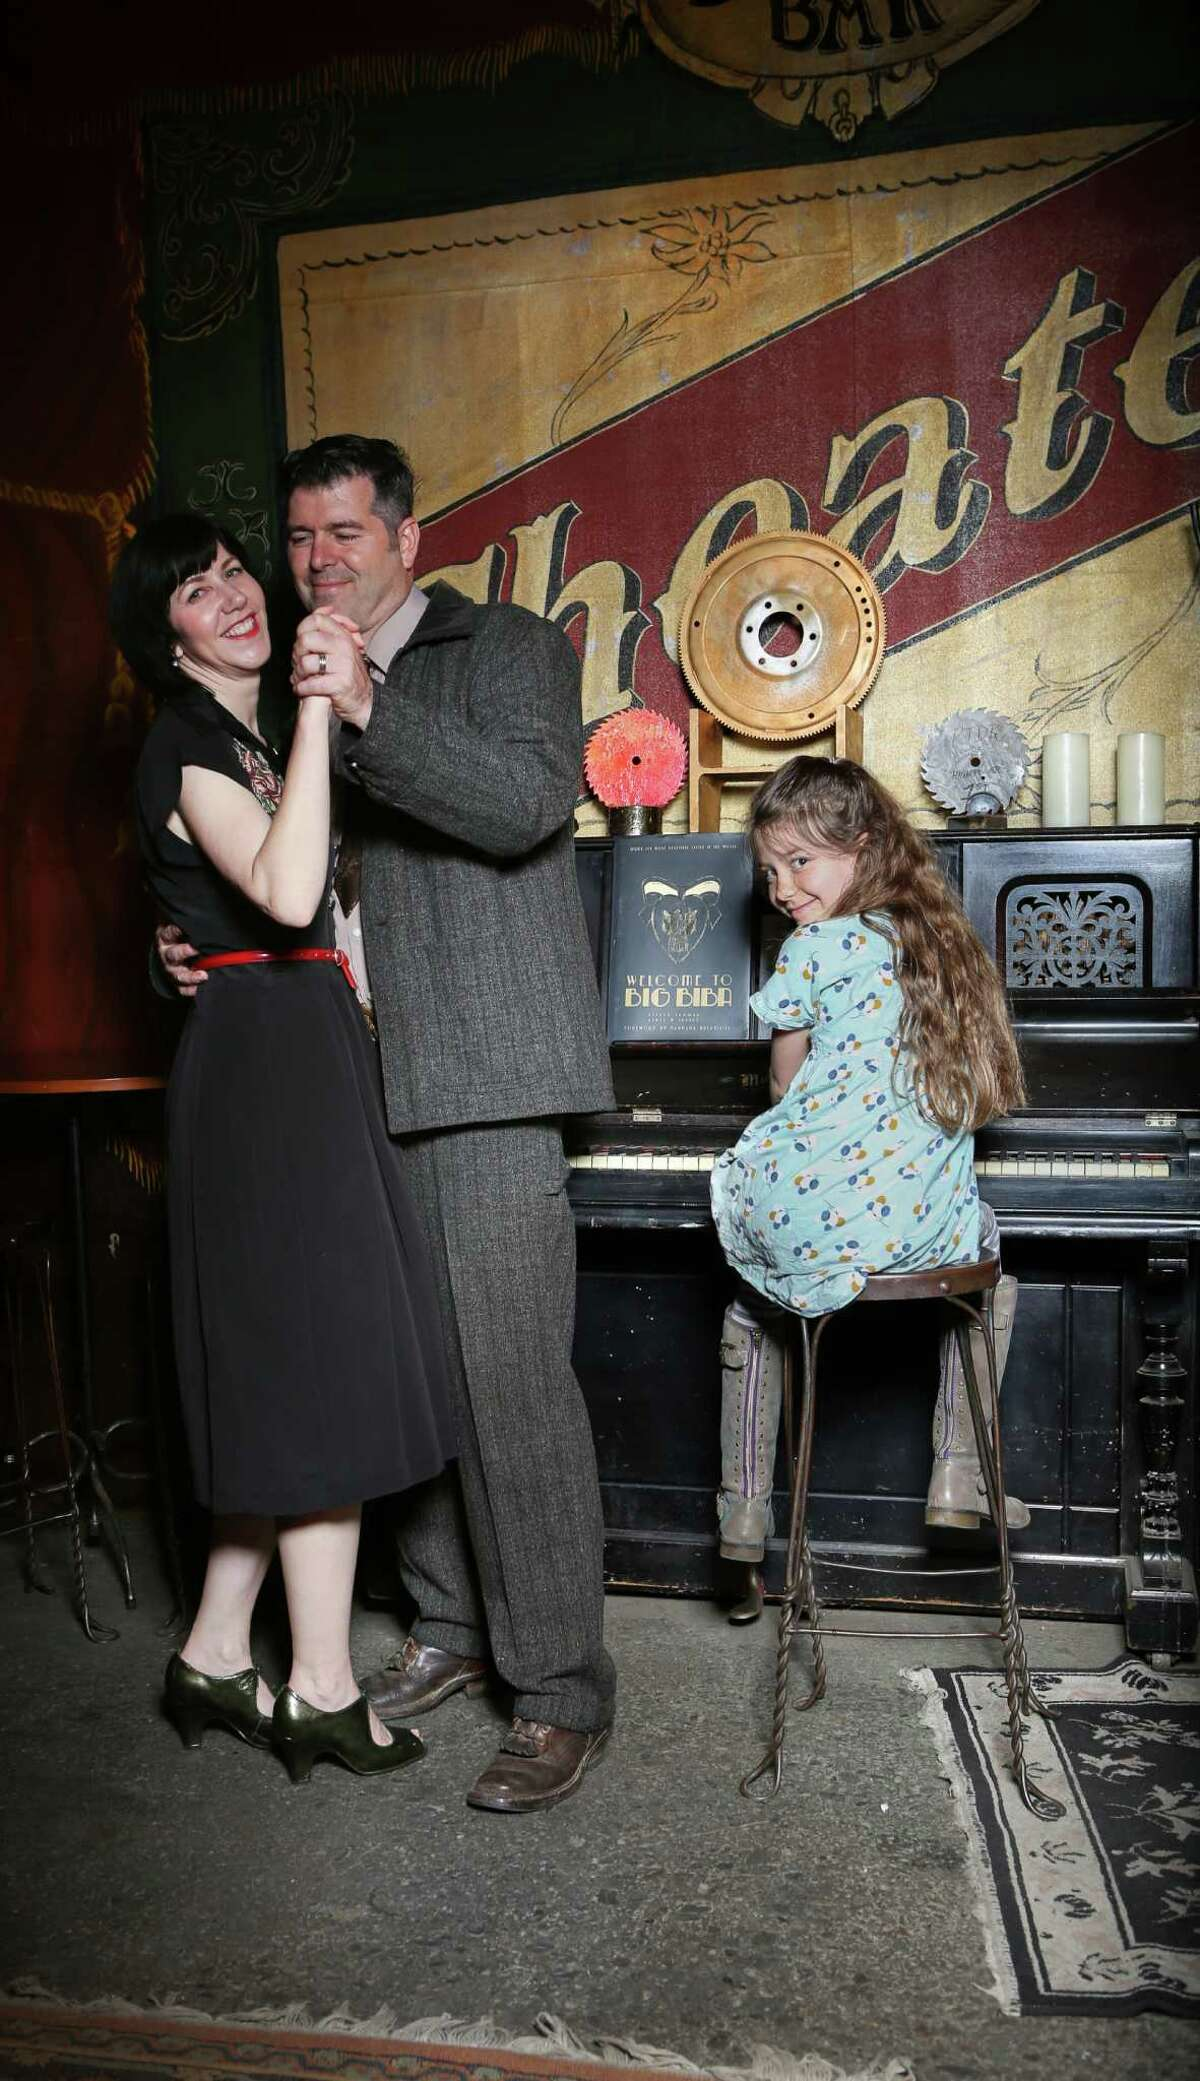 Stylish and artistic couple Kyrsten Mate and Jon Sarriugarte, with daughter Zolie, favor 1940s attire.